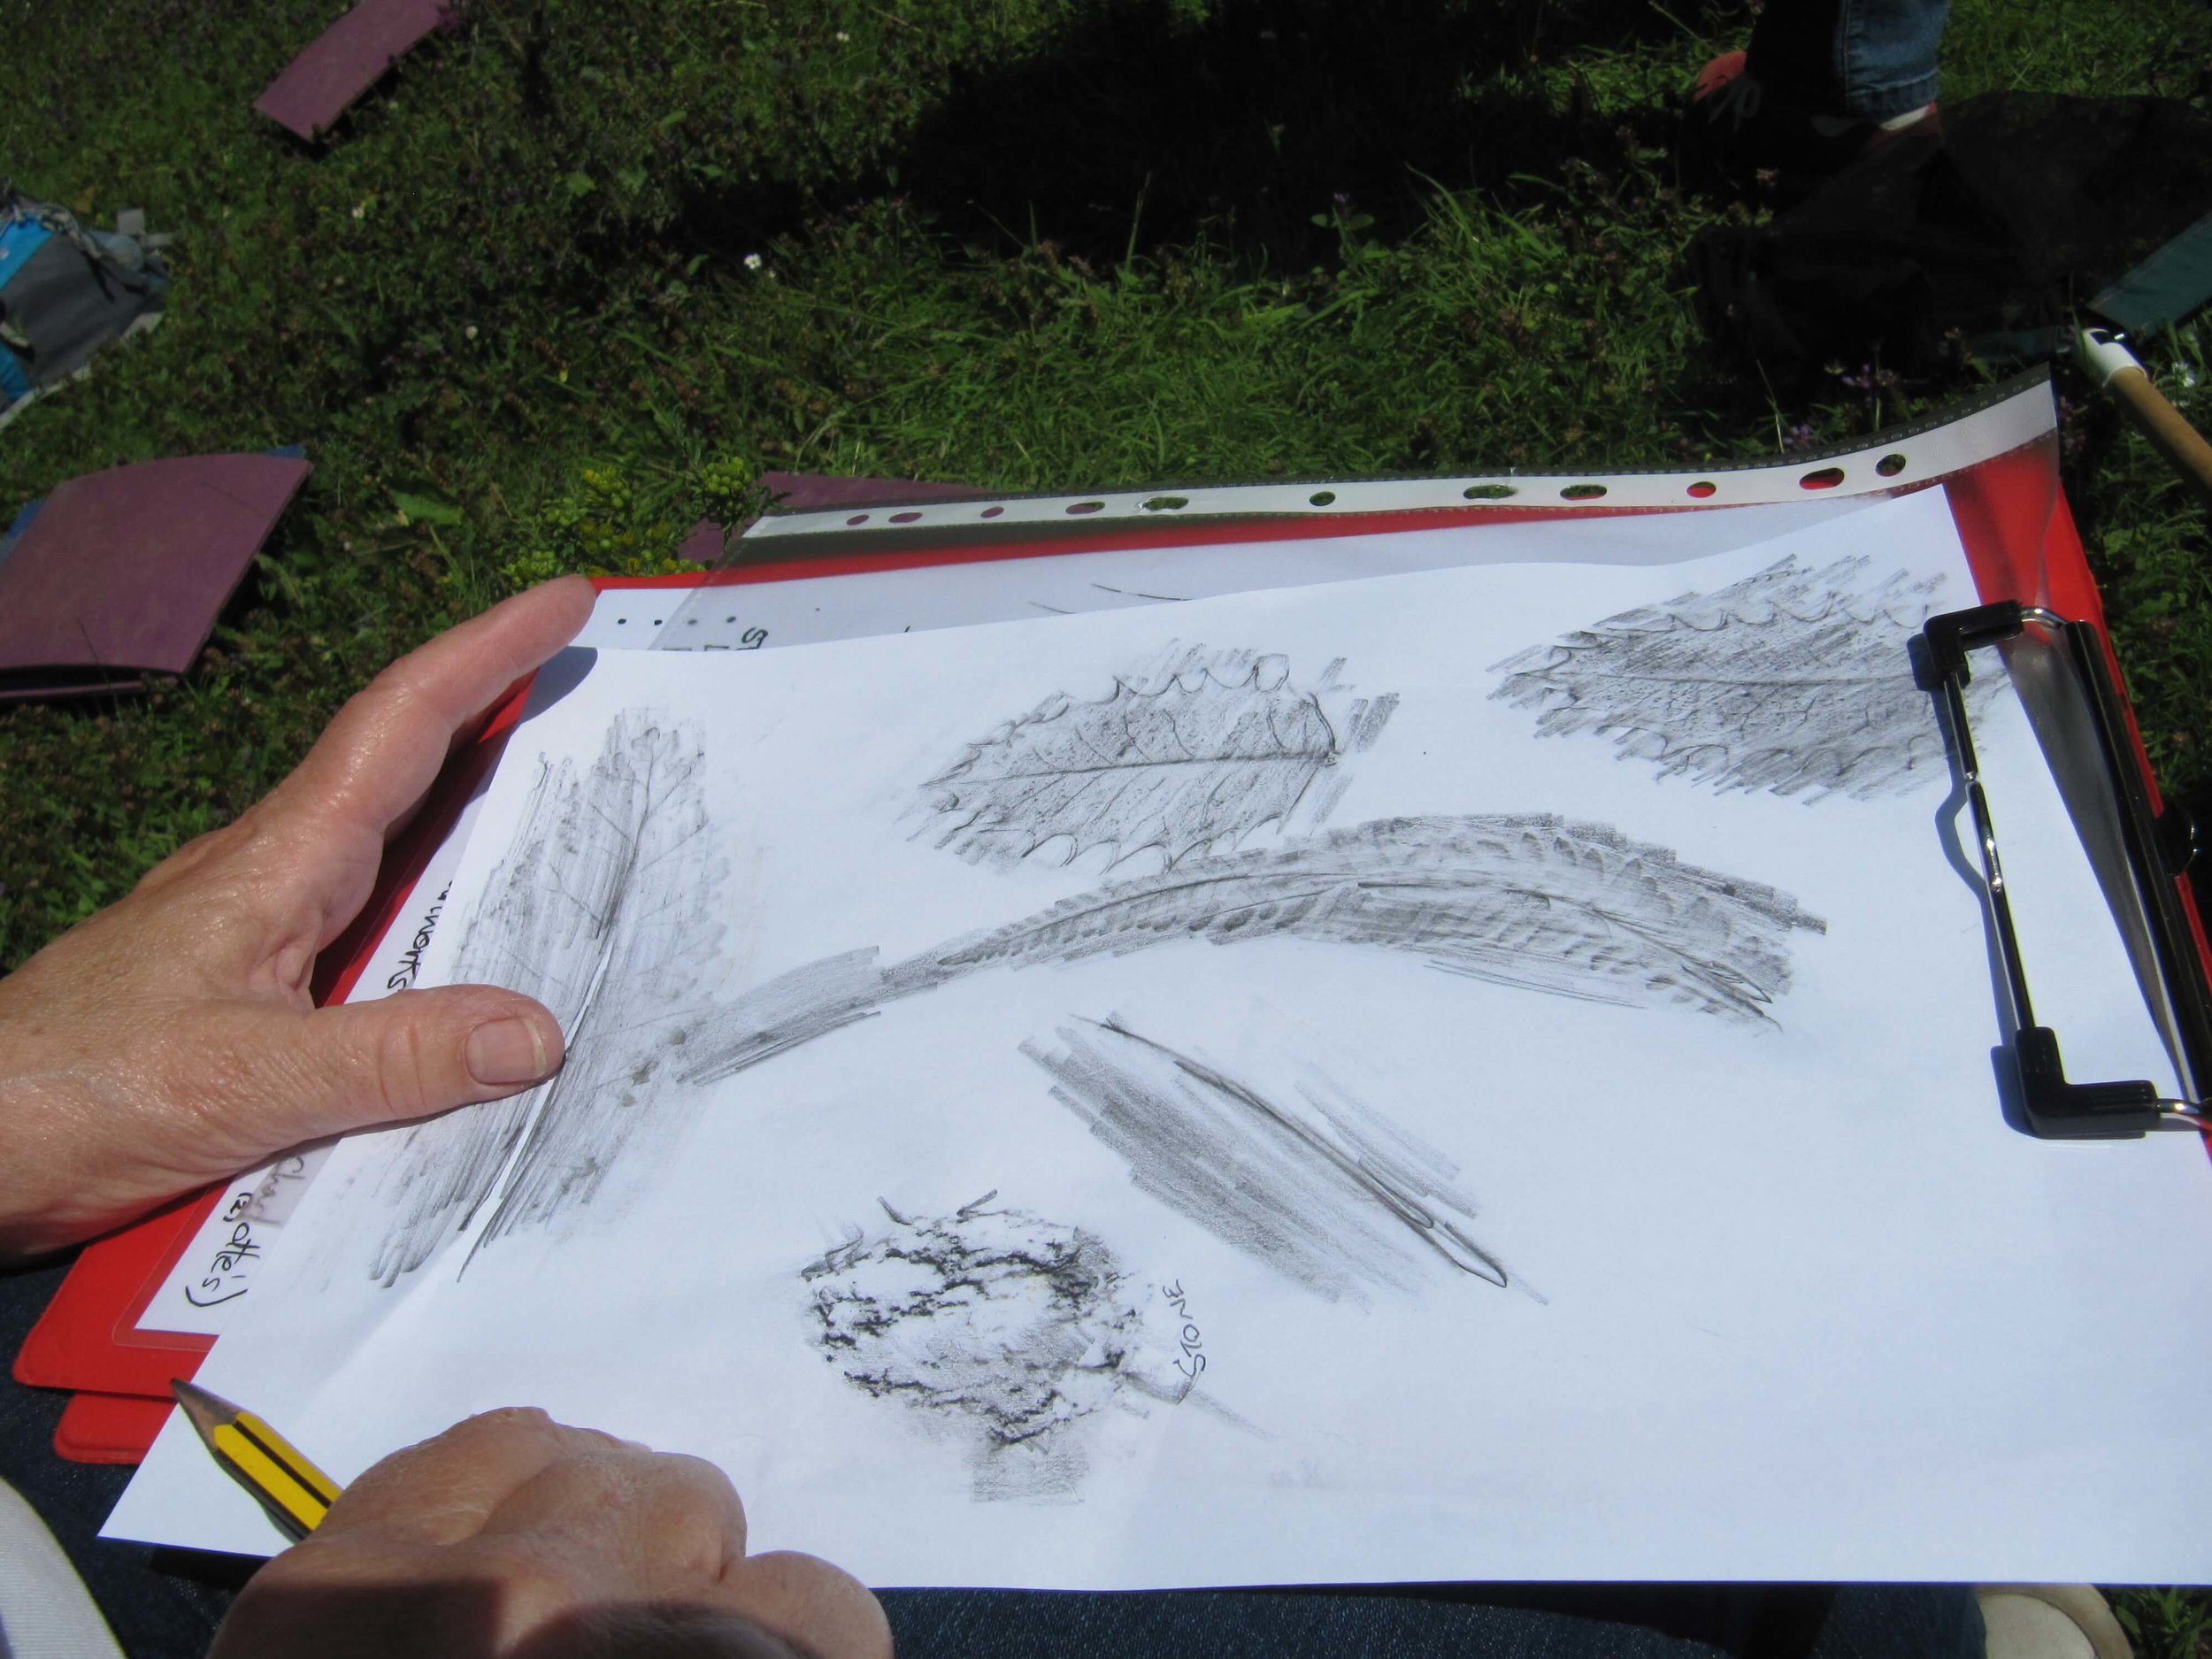 Participant doing rubbings